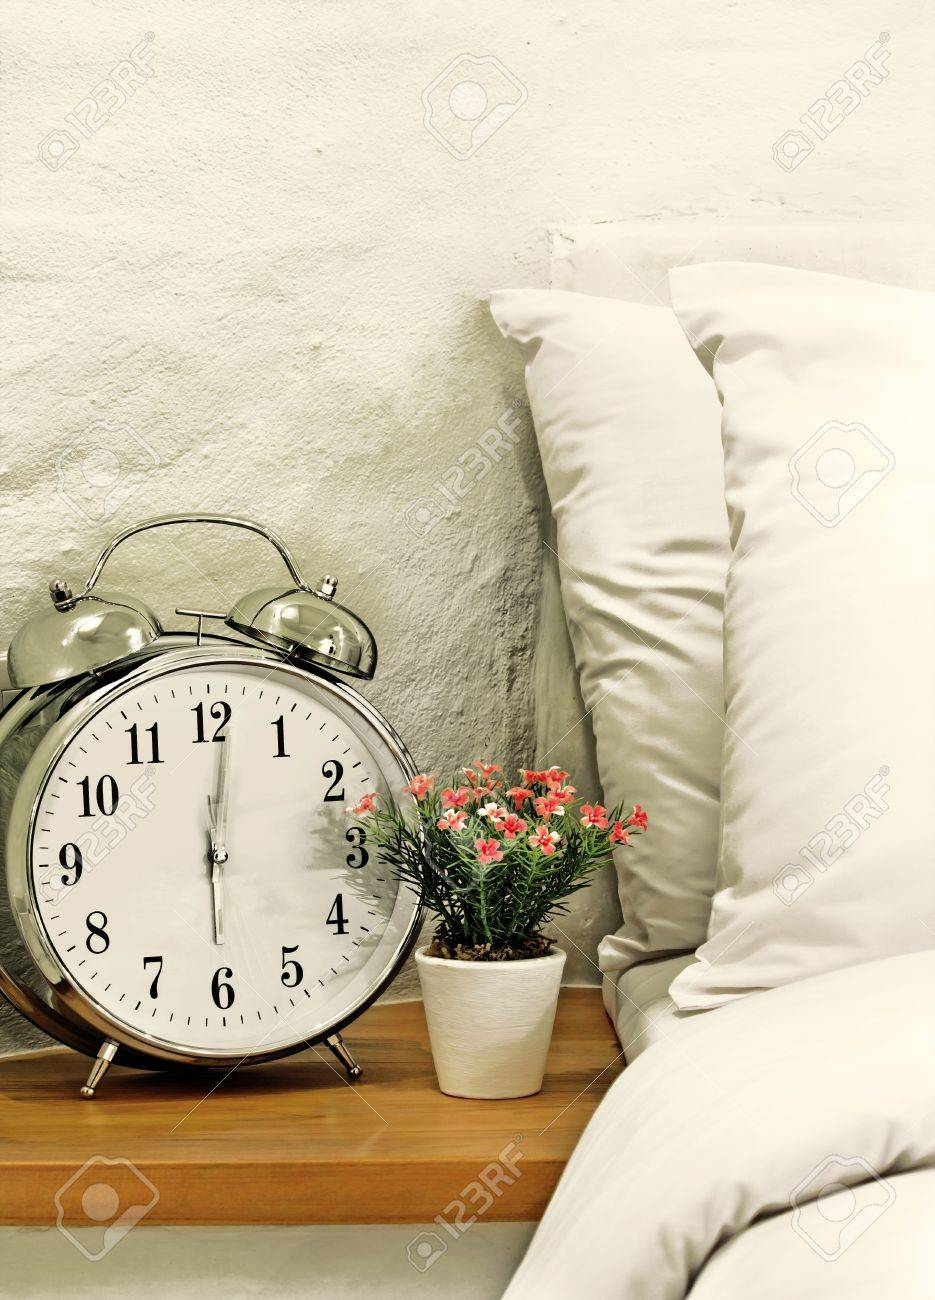 6 o clock in bedroom stock photo picture and royalty free image 6 o clock in bedroom stock photo 9744832